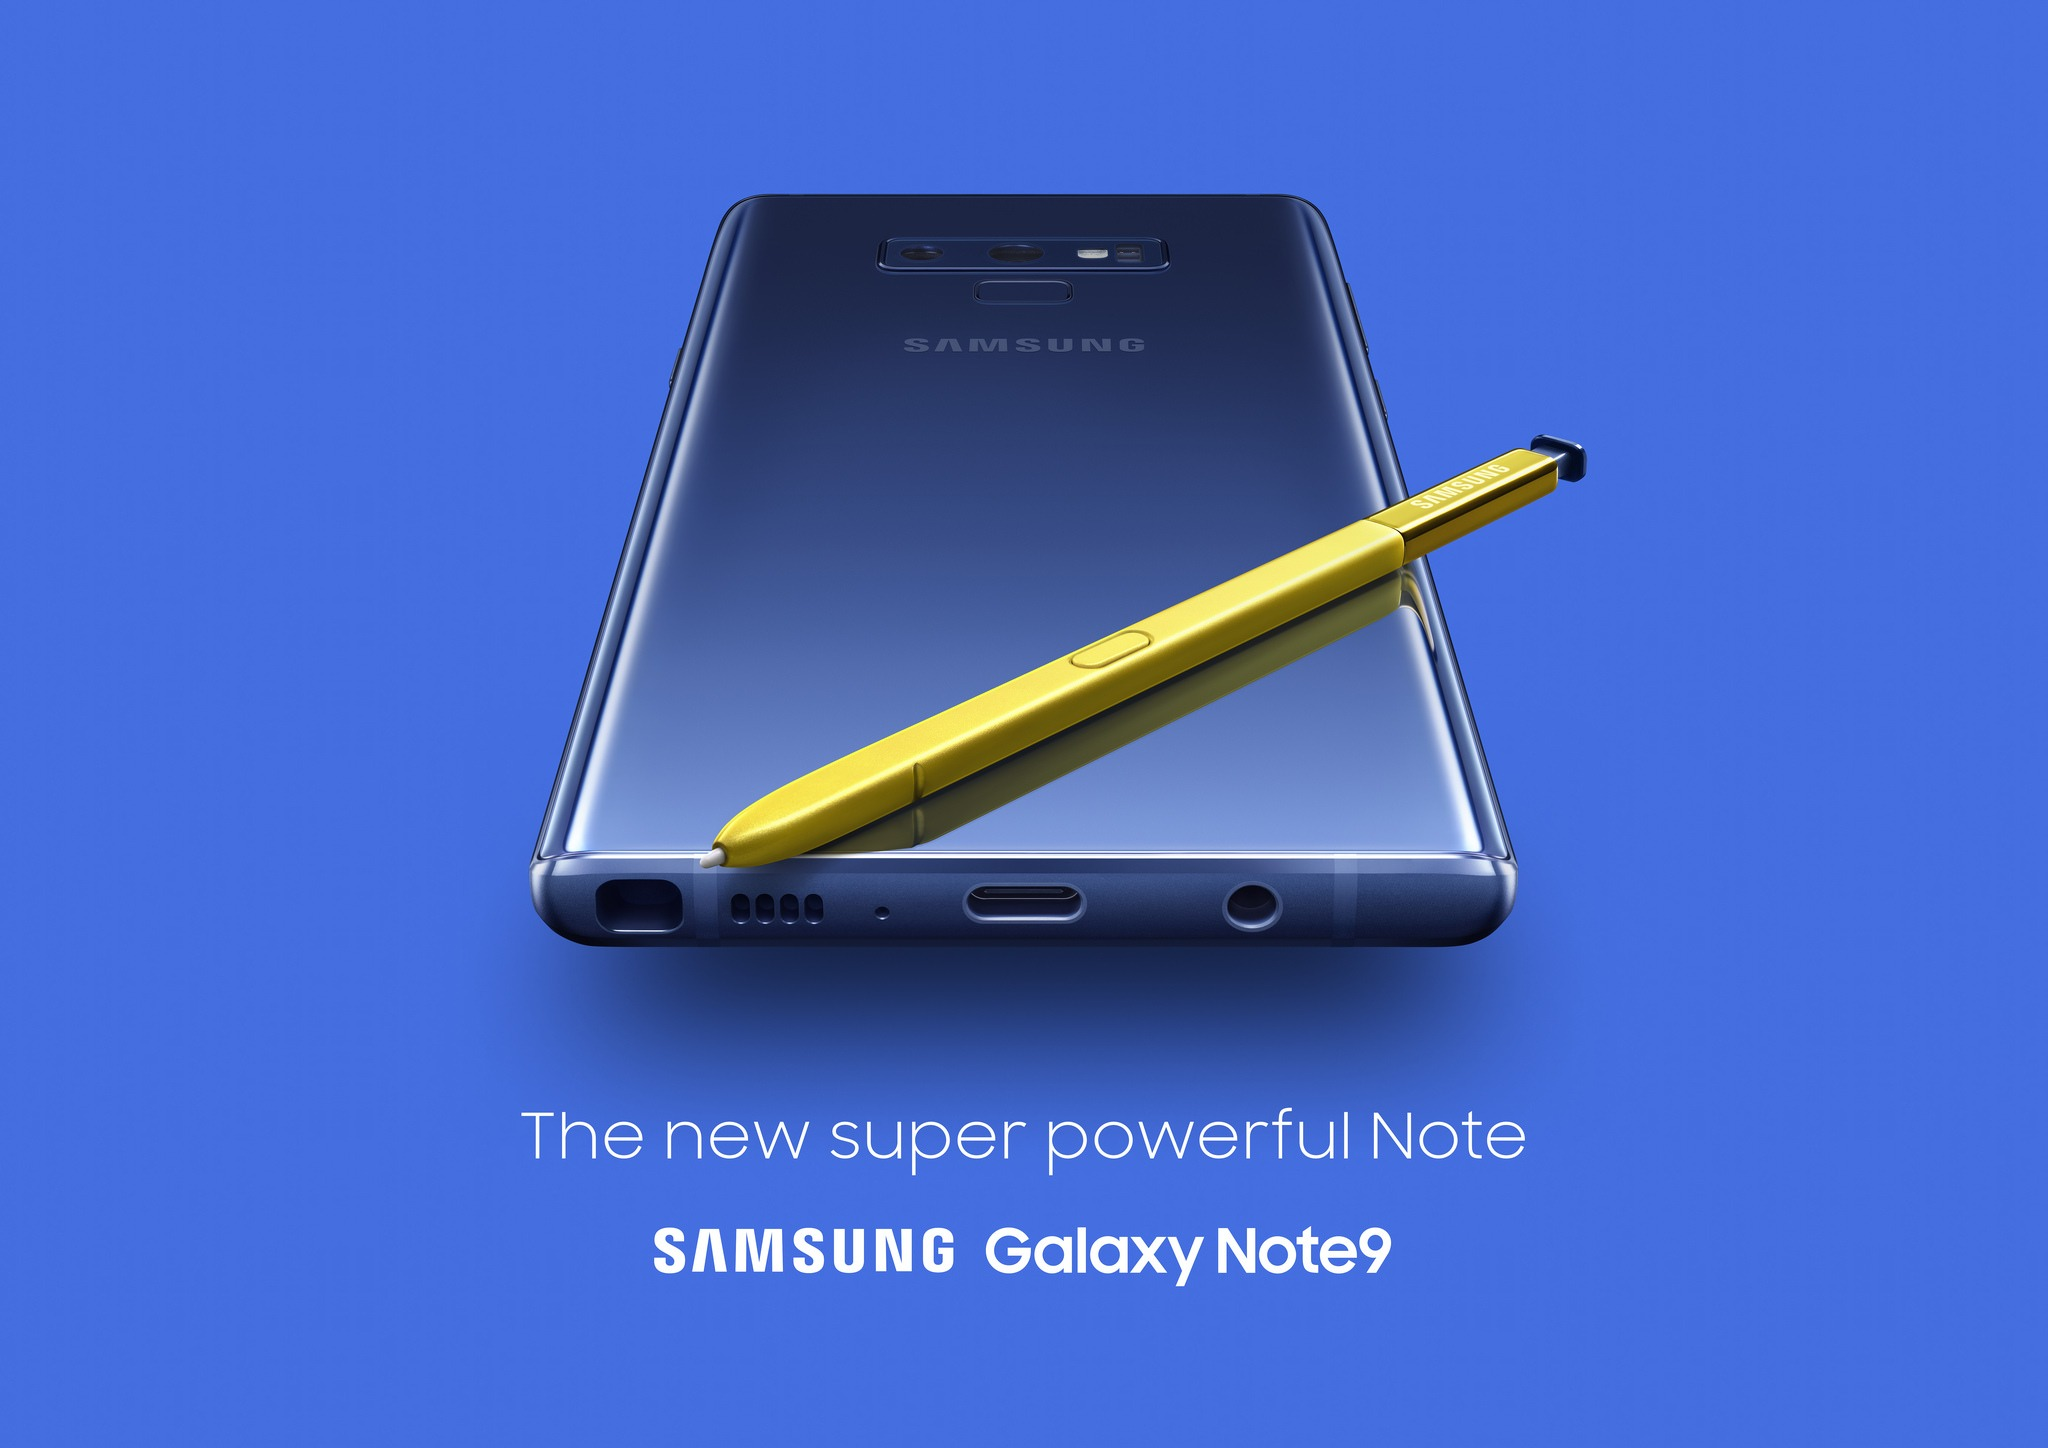 Samsung Galaxy Note 9 announced with dual cameras & improved S-Pen 1